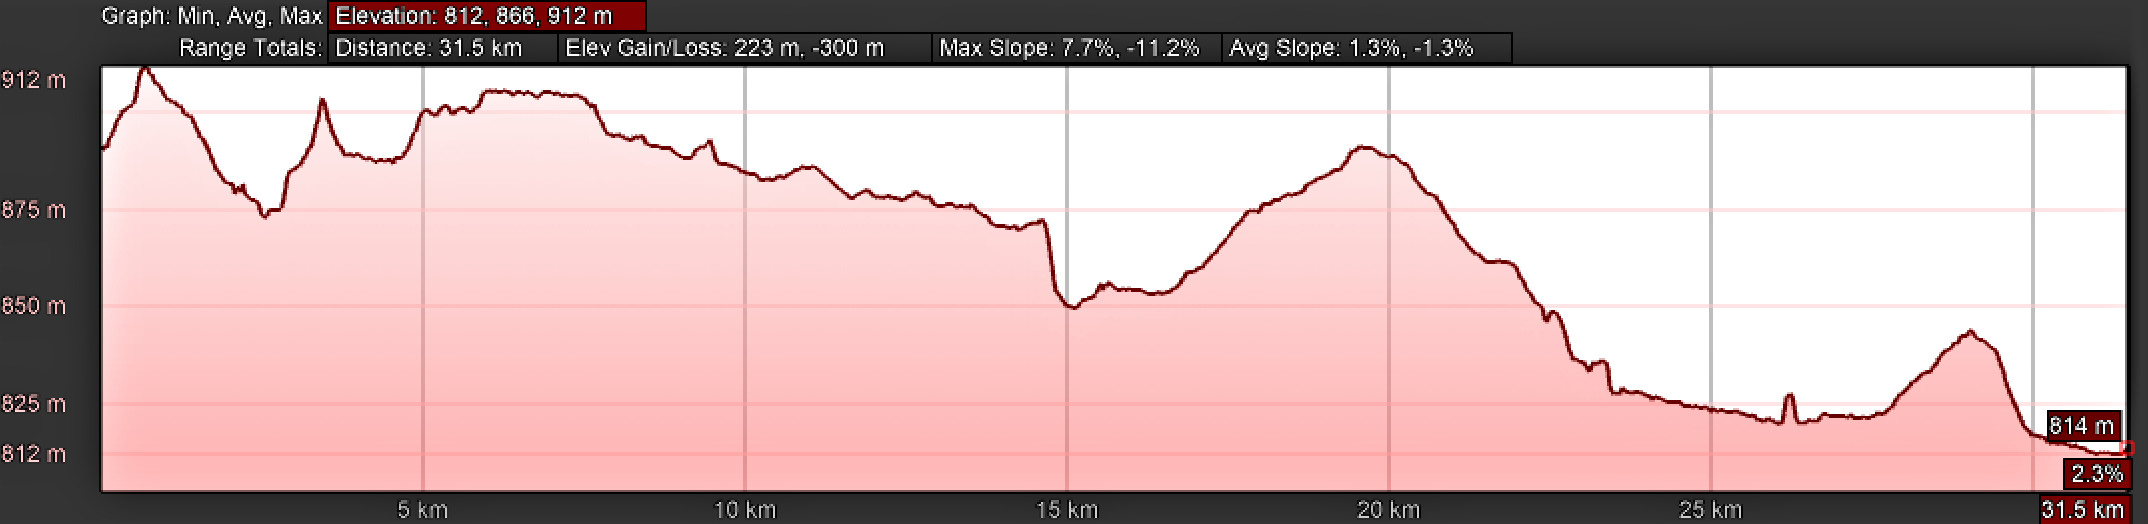 Elevation Profile, Day Five, Camino Teresiano Northern Route, Mancera de Abajo to Garcihernández